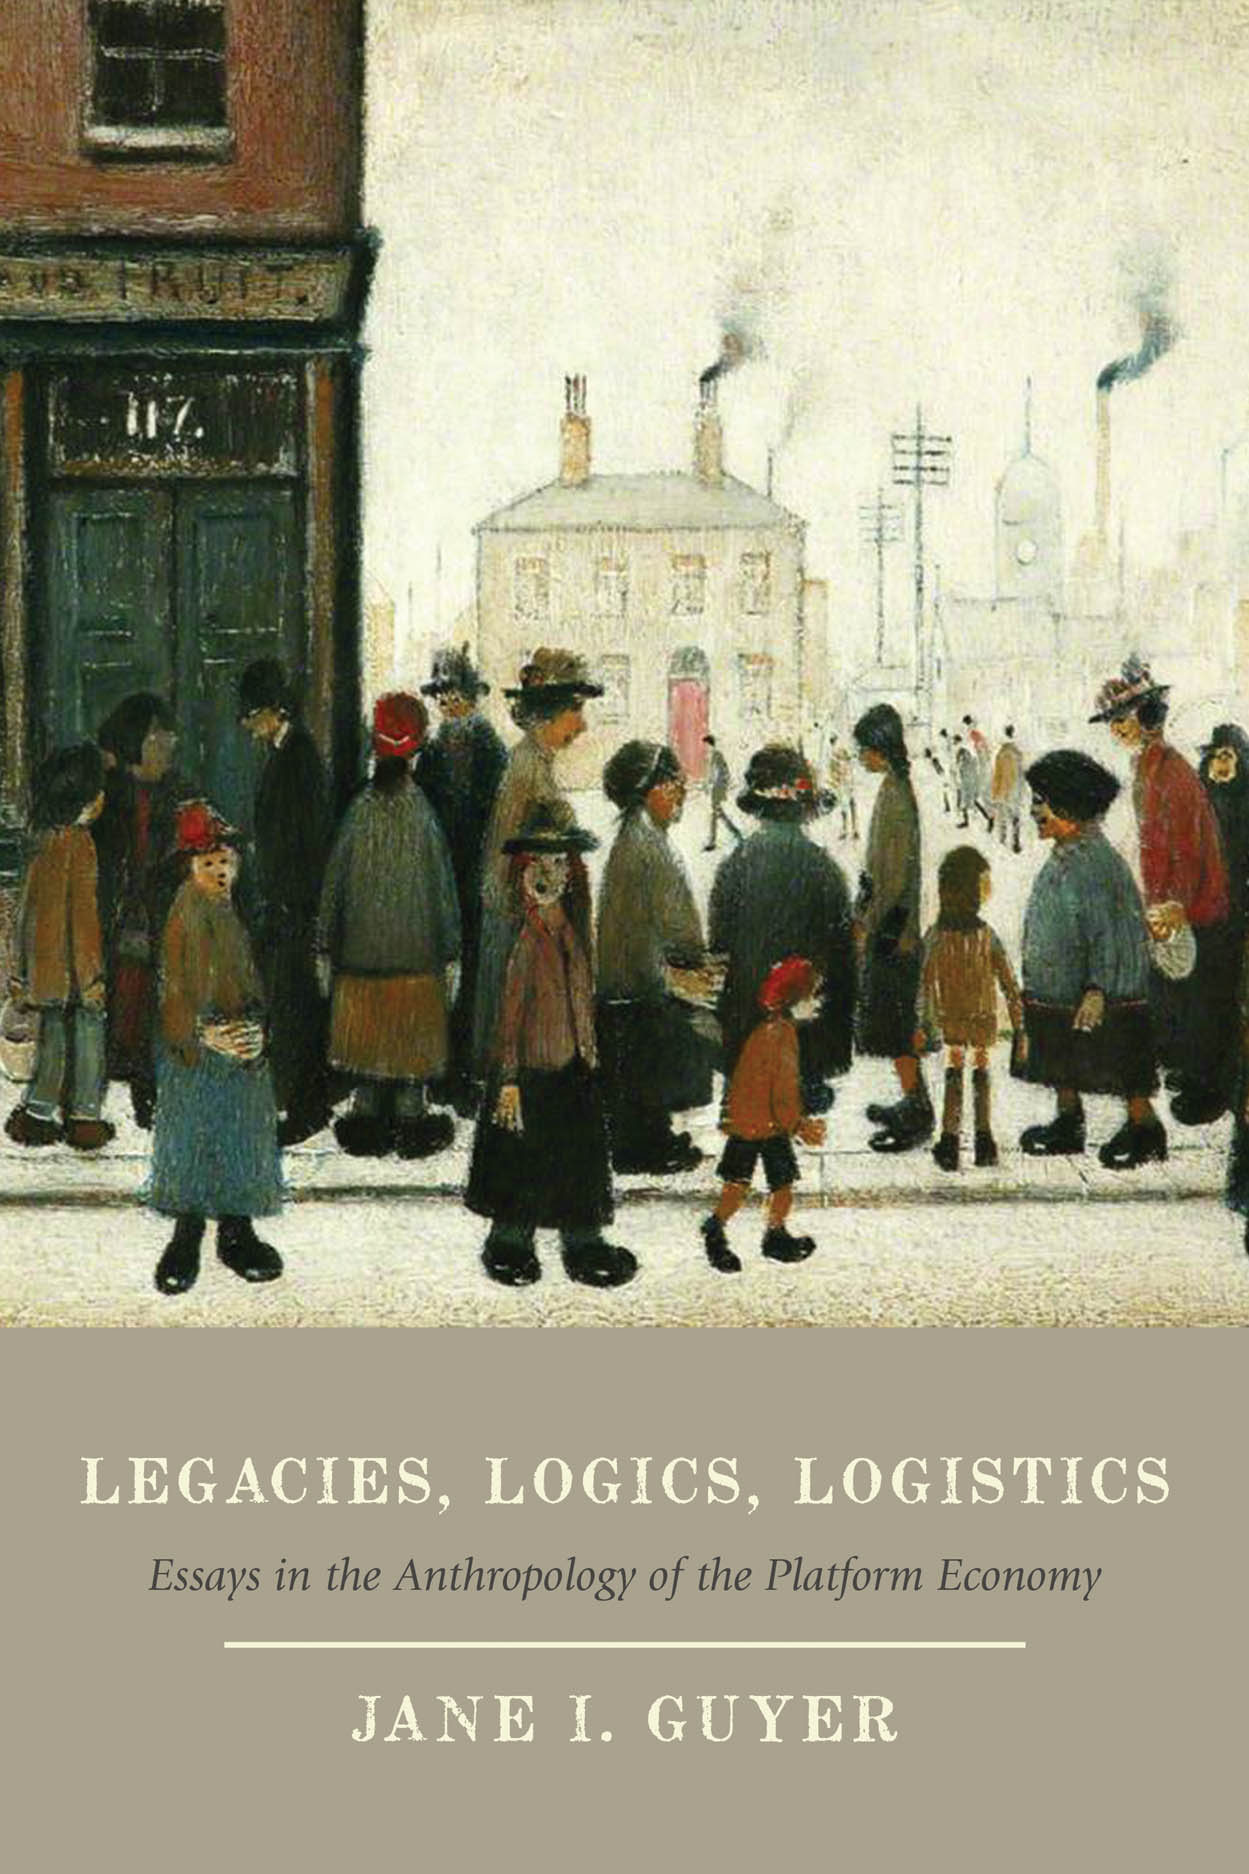 Legacies, Logics, Logistics: Essays in the Anthropology of the Platform Economy